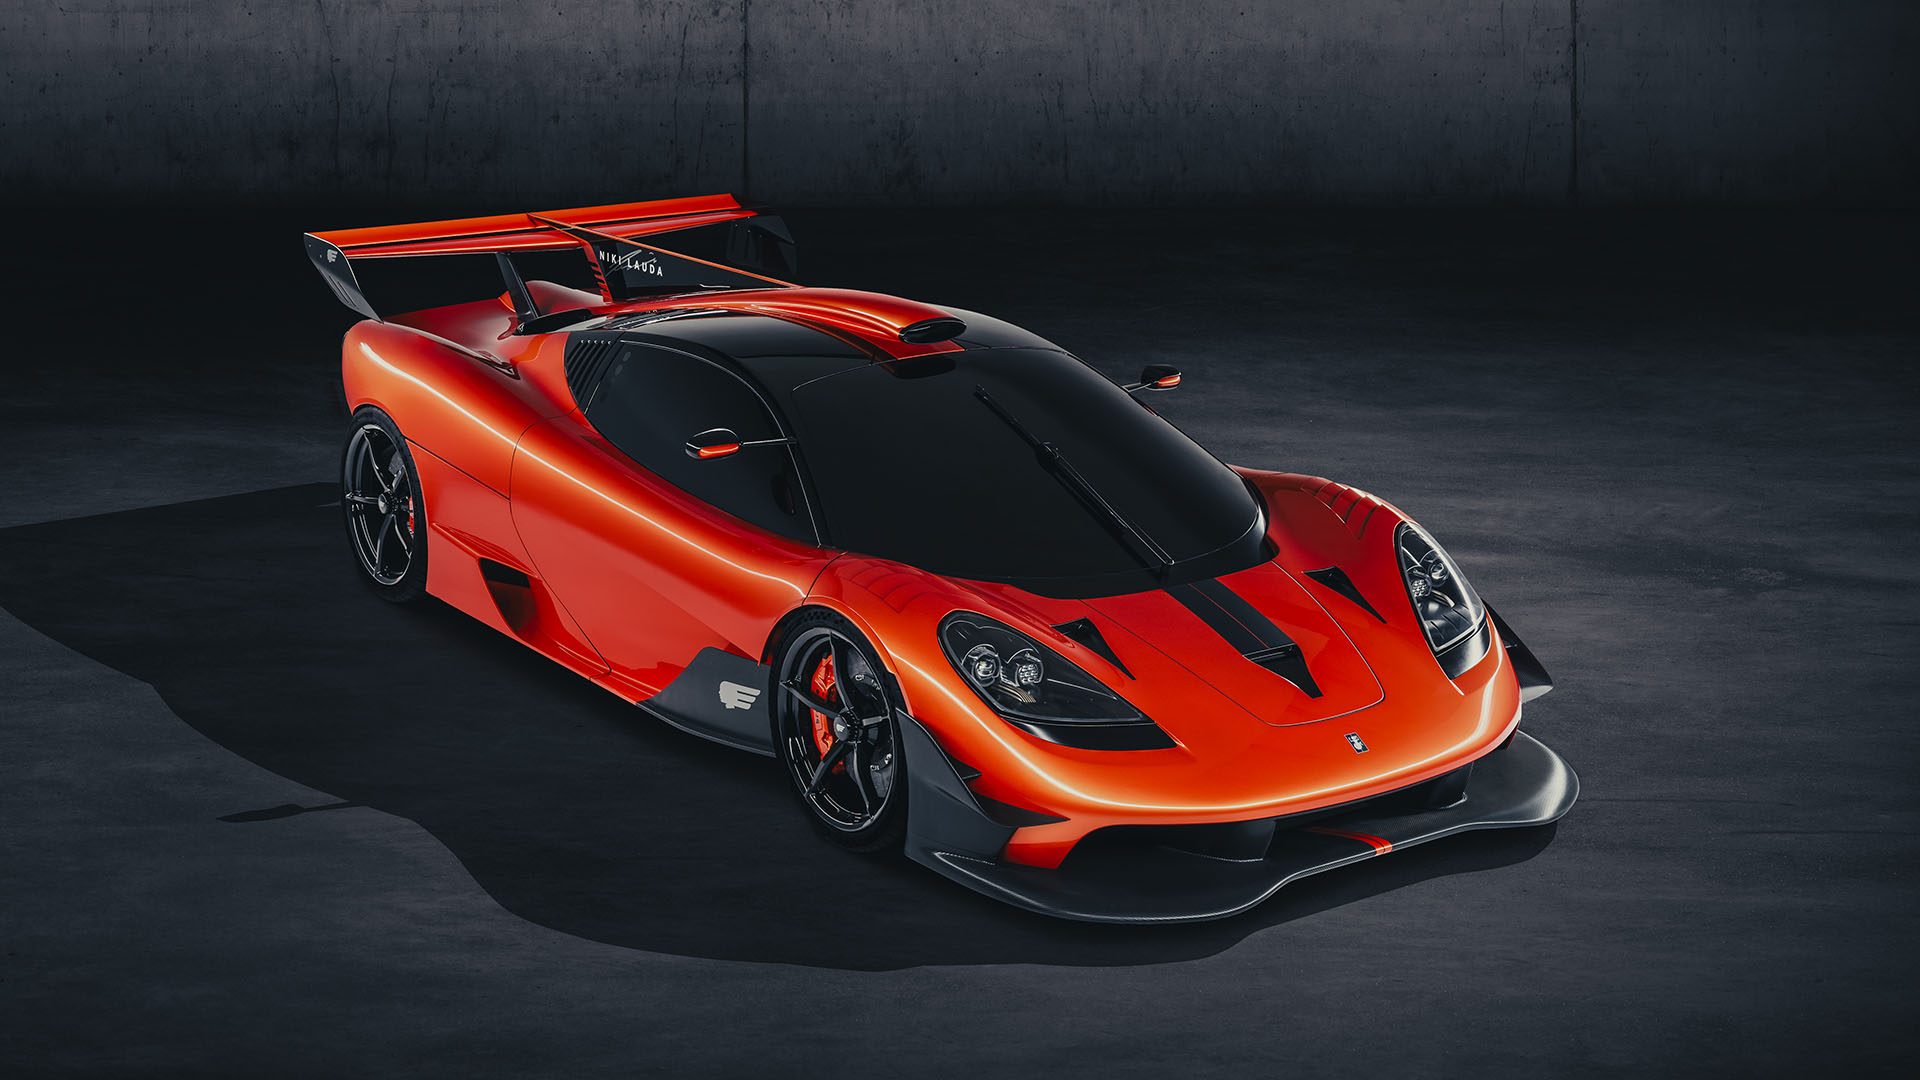 Gordon Murray has opted to name the extreme, £3.1 million track version of his new hypercar, the T.50s, after three-time world champion Niki Lauda, who passed away in May 2019.